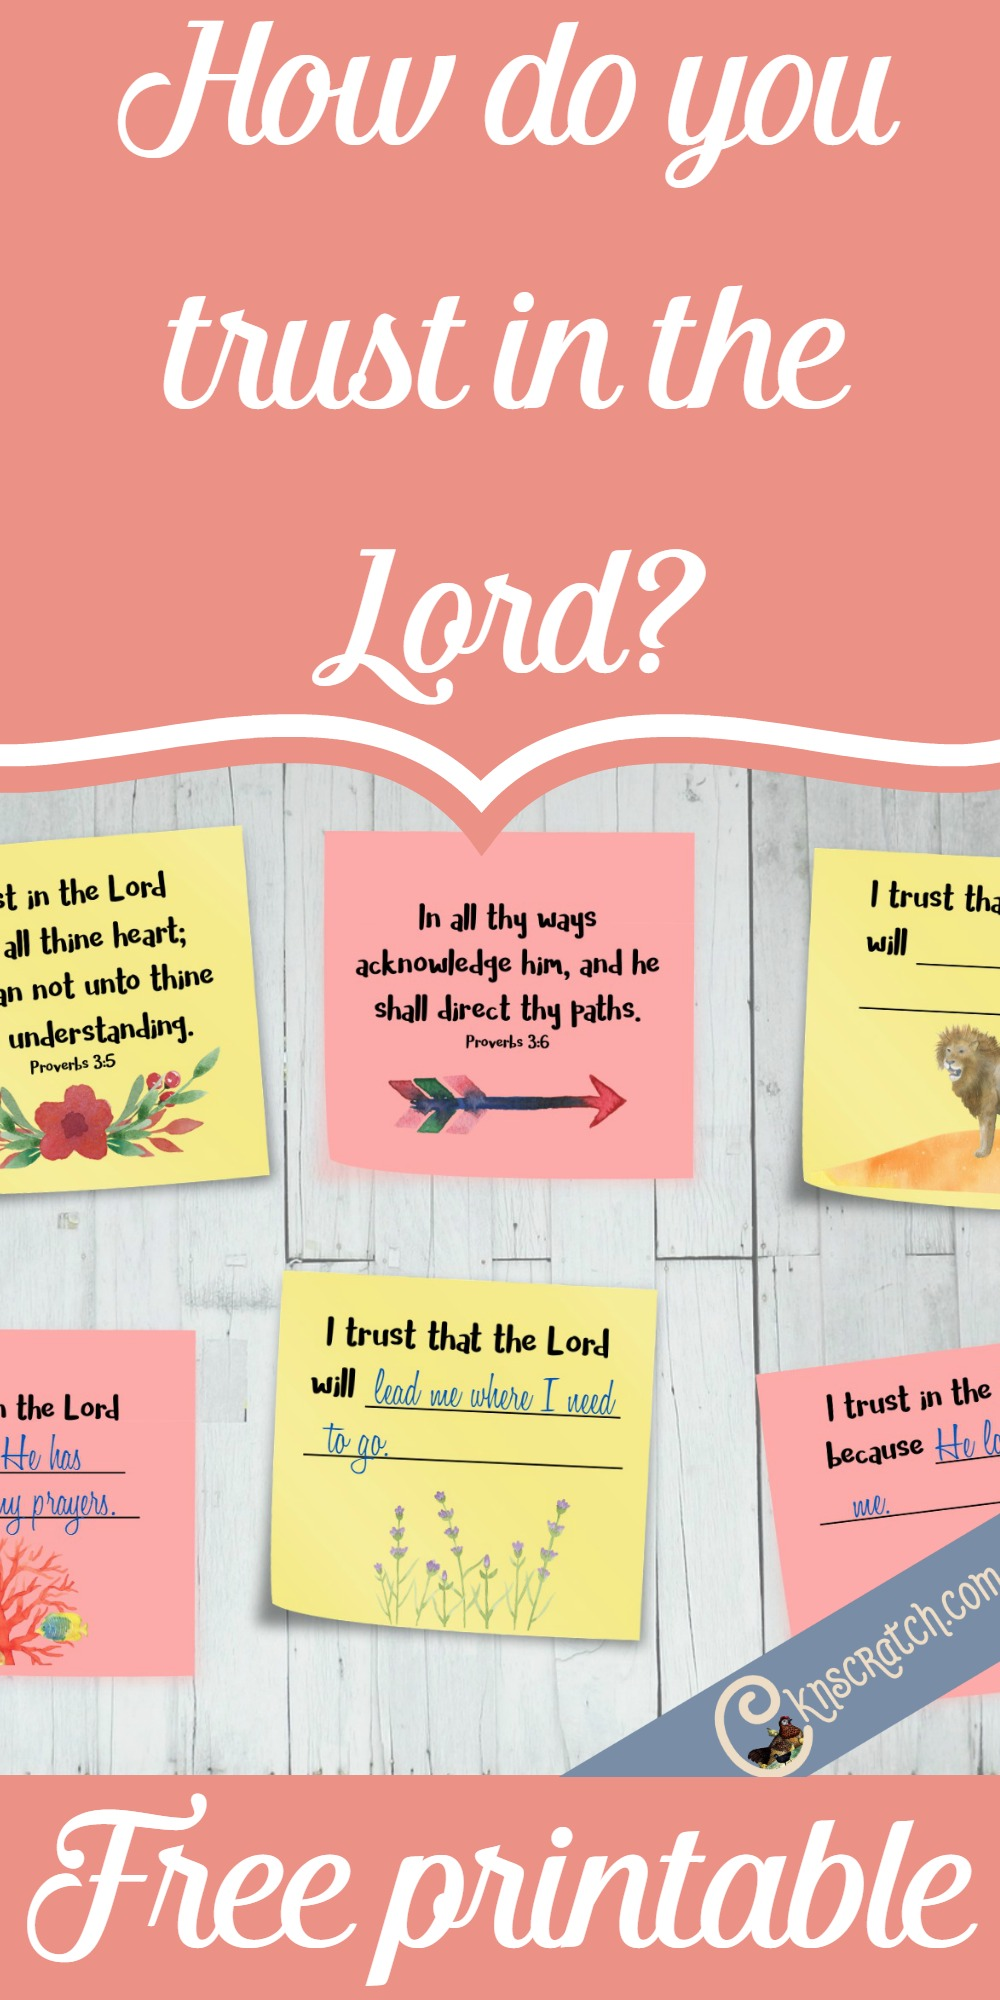 These post-its for Proverbs 3:5-6 are such a great idea. It would make a great FHE or personal study! Free printable